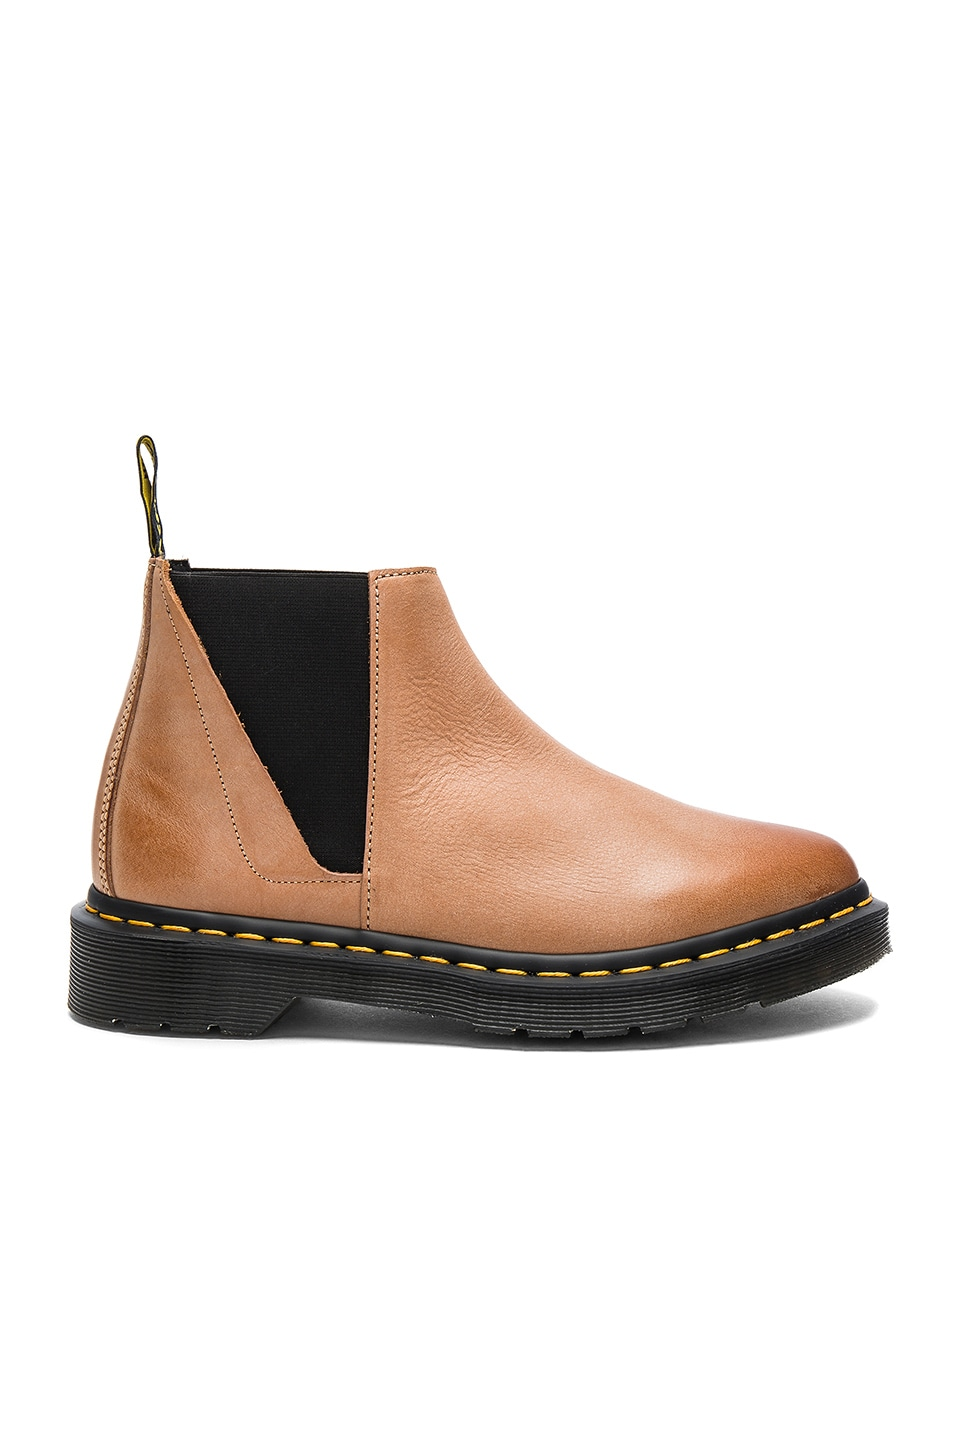 Dr. Martens Bianca Low Shaft Chelsea Boot in Brown